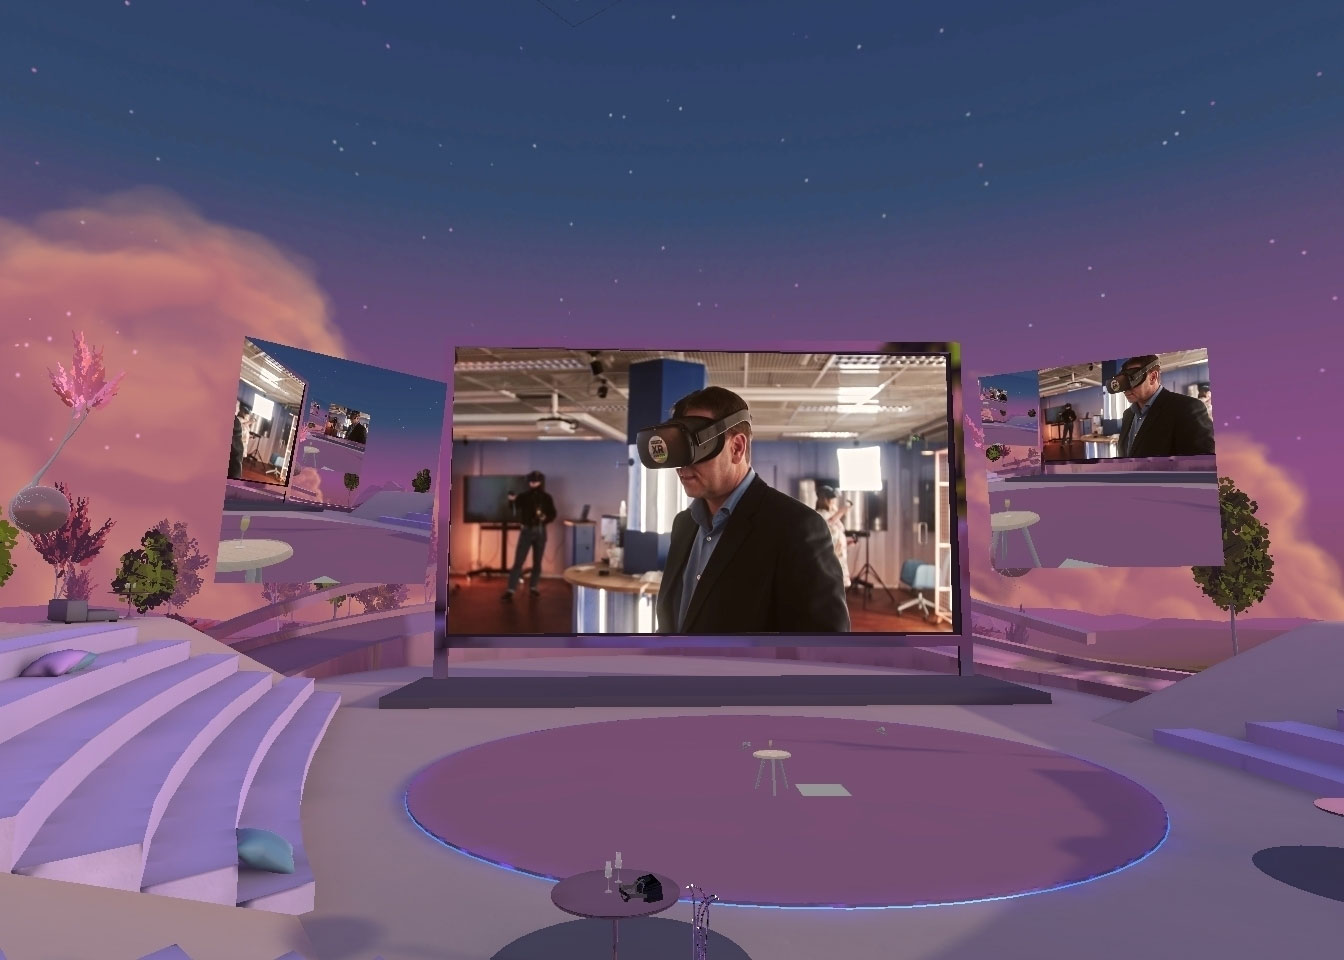 Lilac amphitheater in a virtual reality environment AltspaceVR. There is a big screen in the middle, with a photo of a person vearing a VR headset.